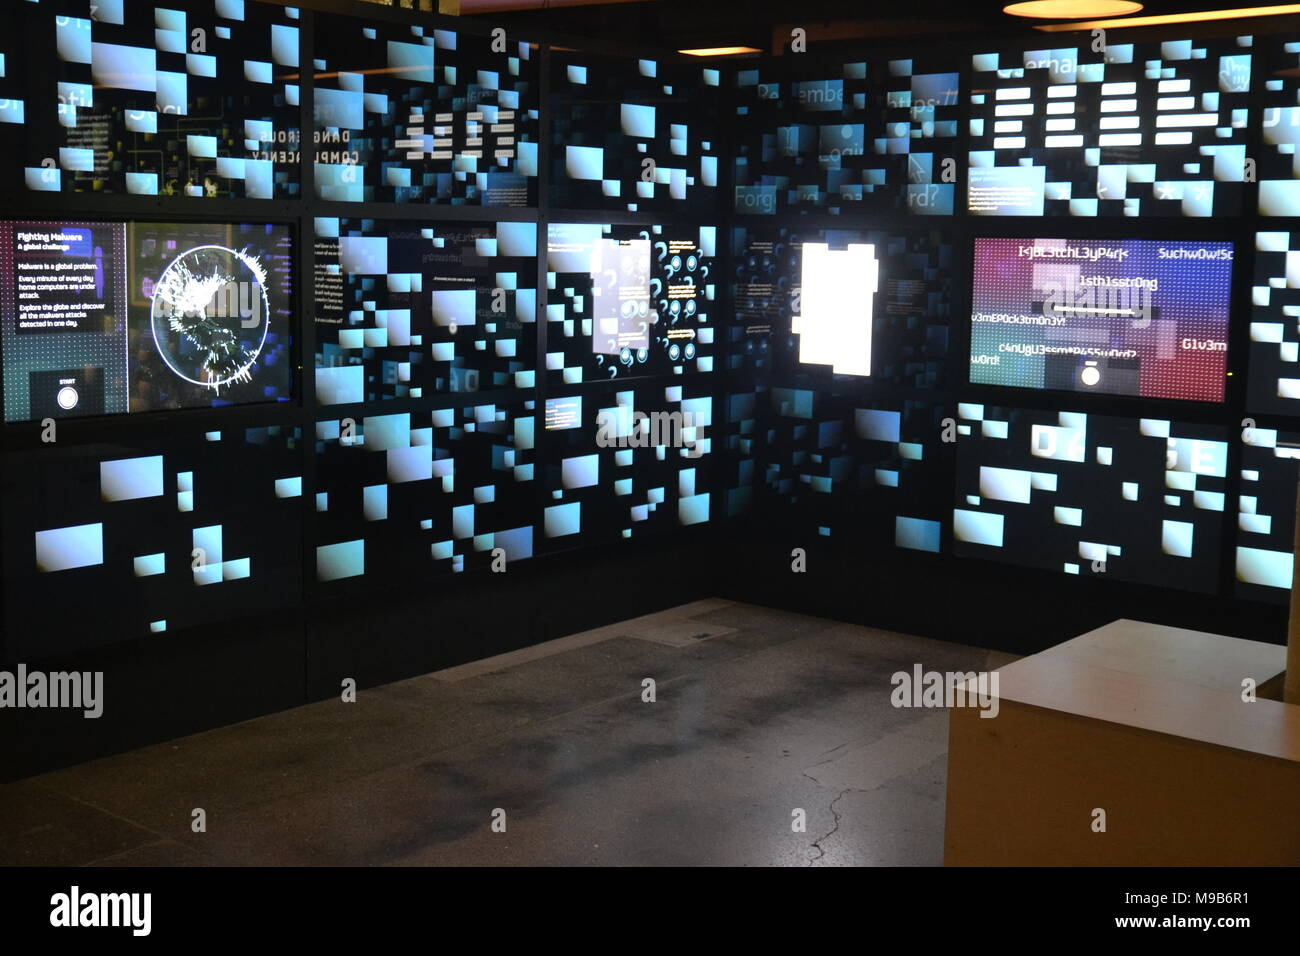 Cyber Security Exhibition at Bletchley Park, UK - Stock Image